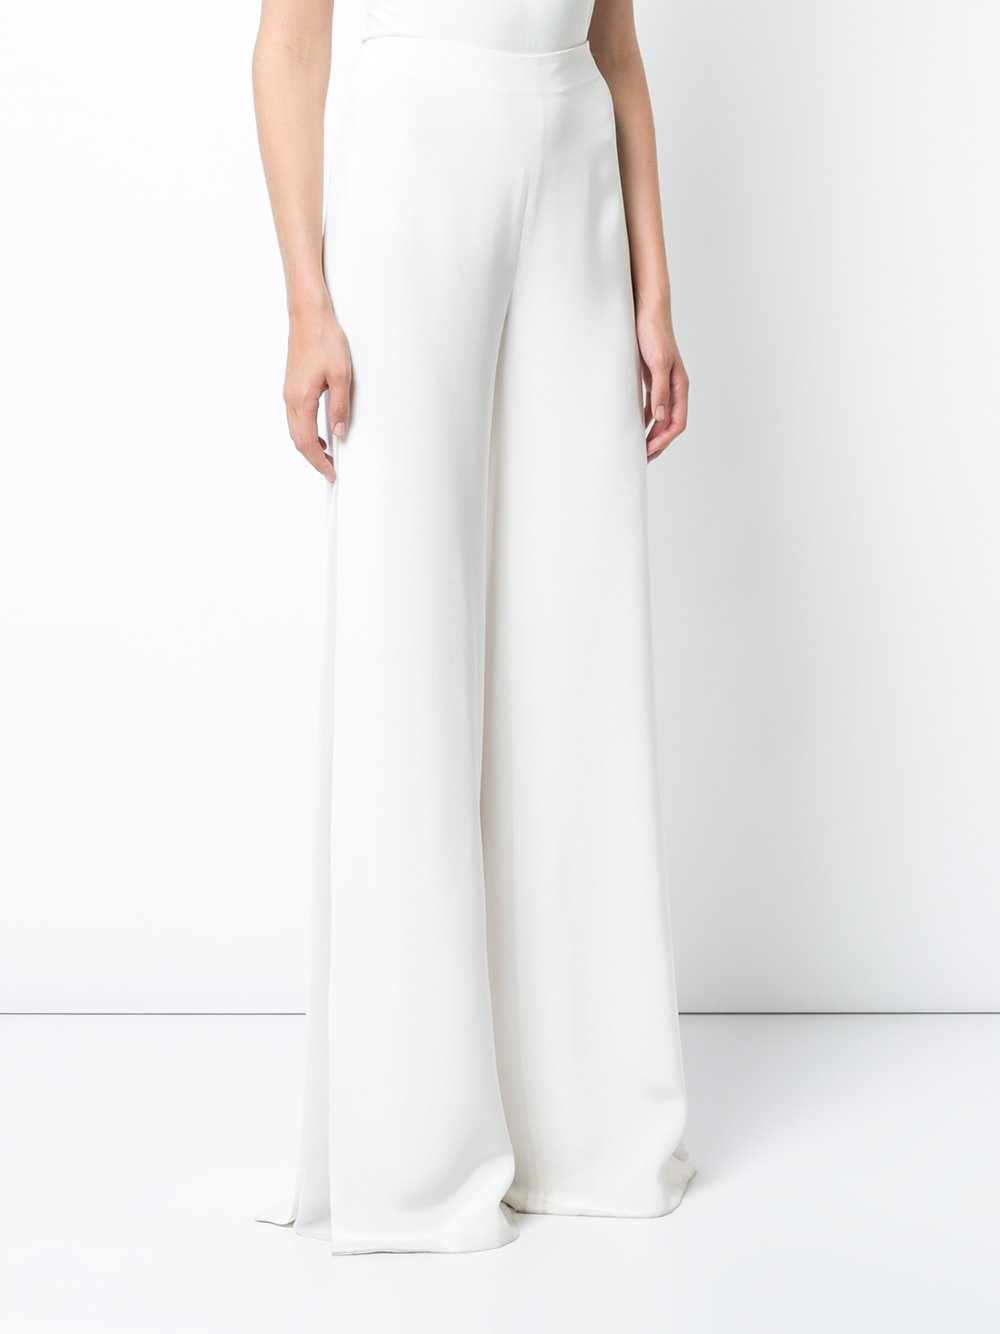 Satin Crepe Wide-Leg Pant with Sheer Inset